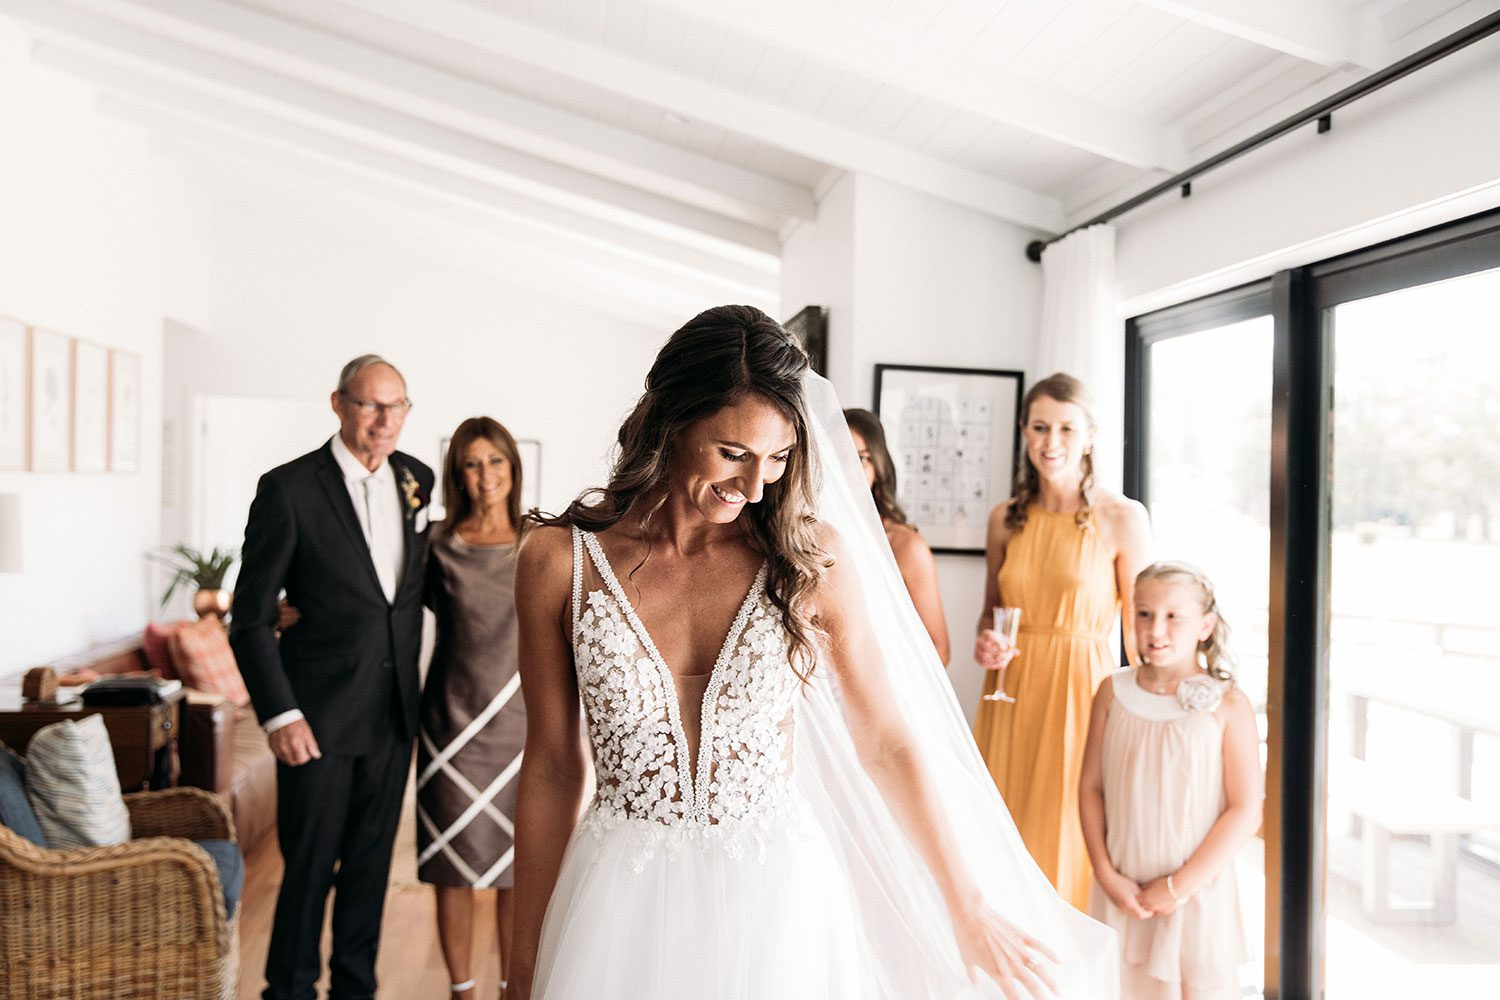 Bride wearing Vinka bridal boutique Isabelle tulle gown with sheer v neck bodice and beaded lace - with family